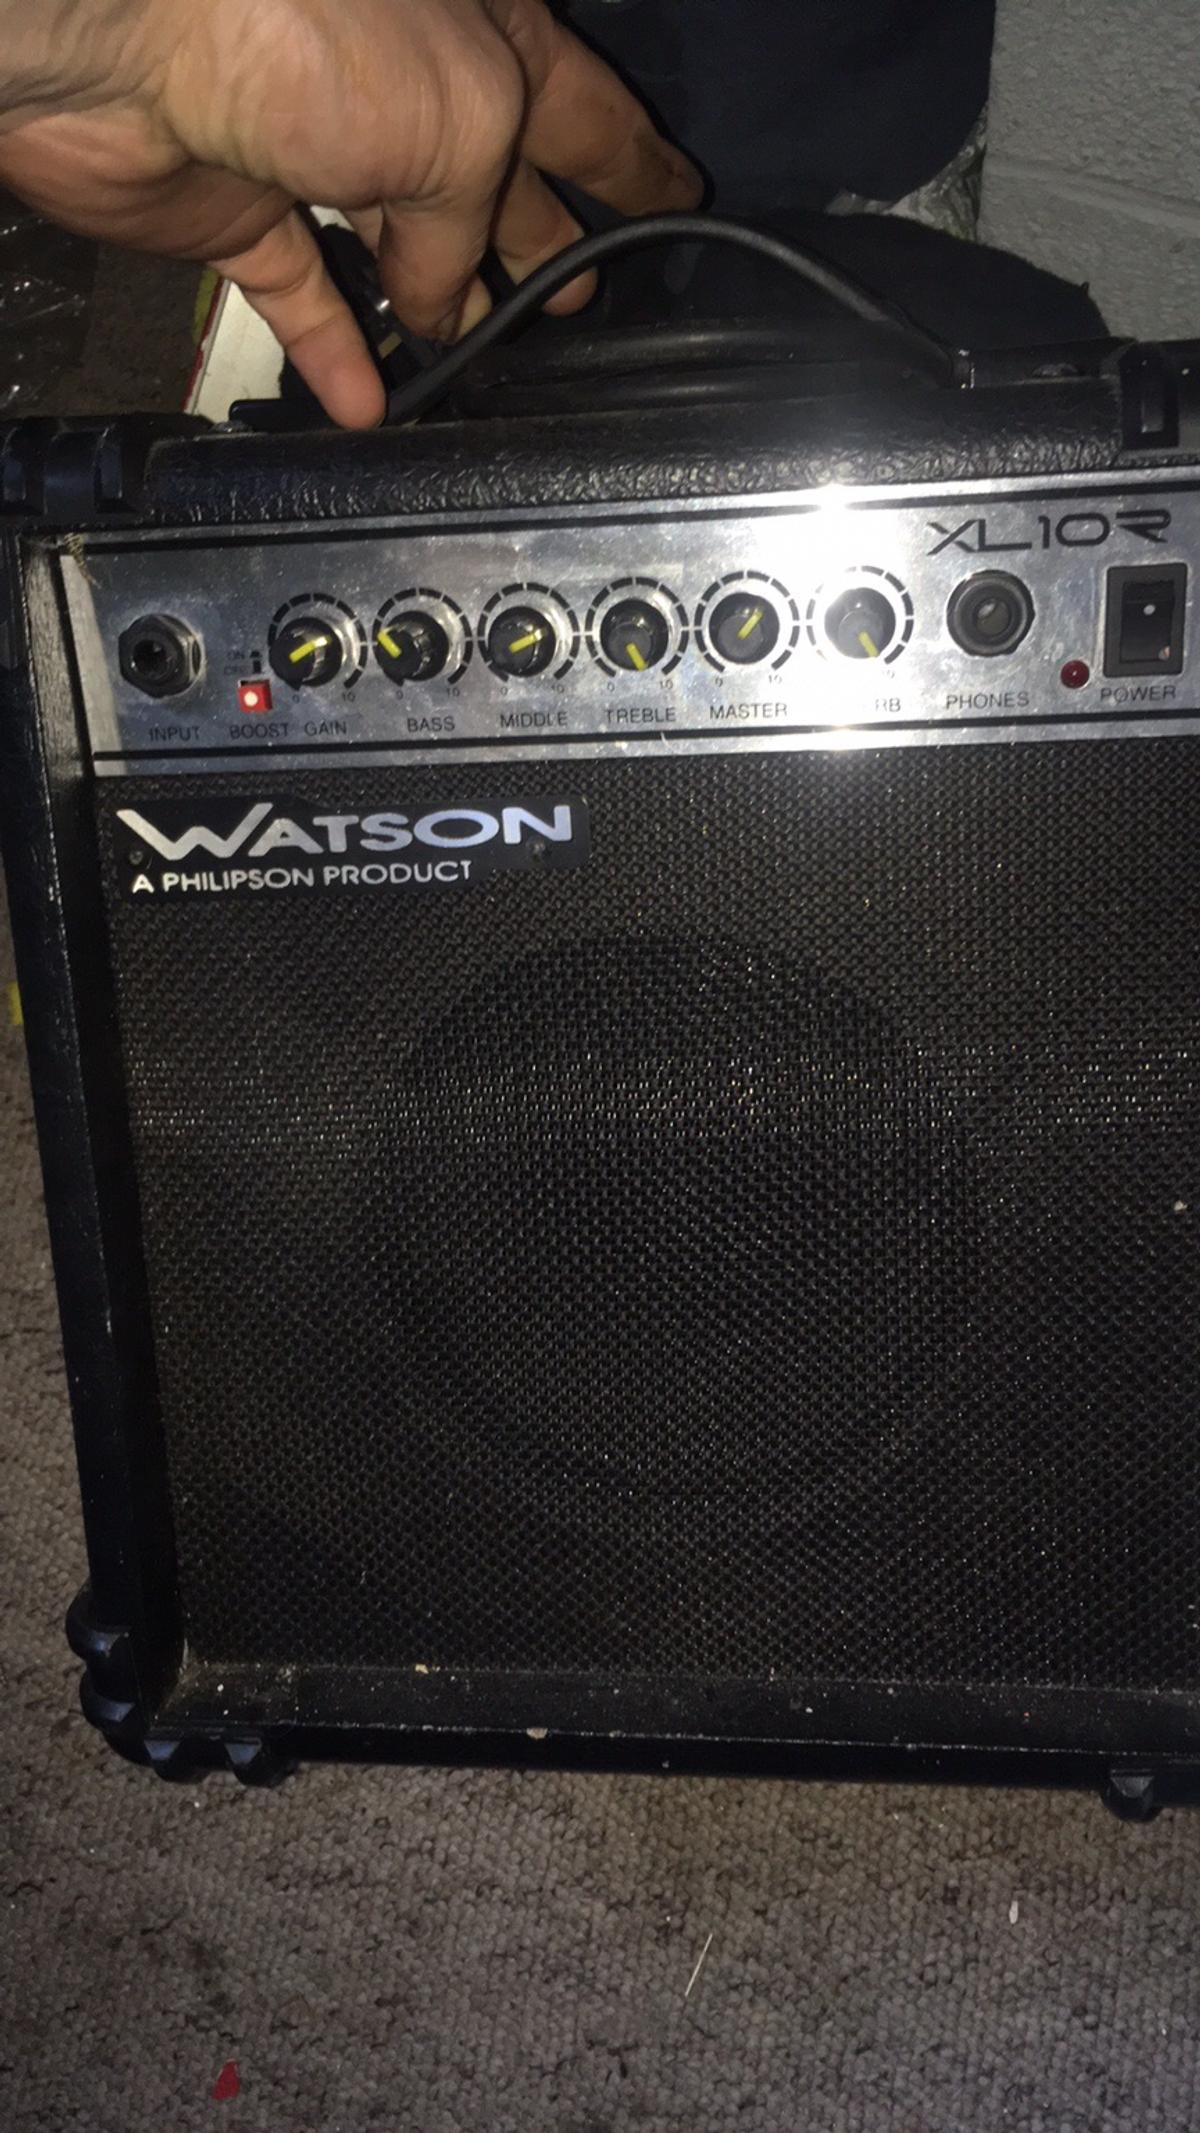 Ibanez guitar and Watson xlr amp 10amp all leads ready to go